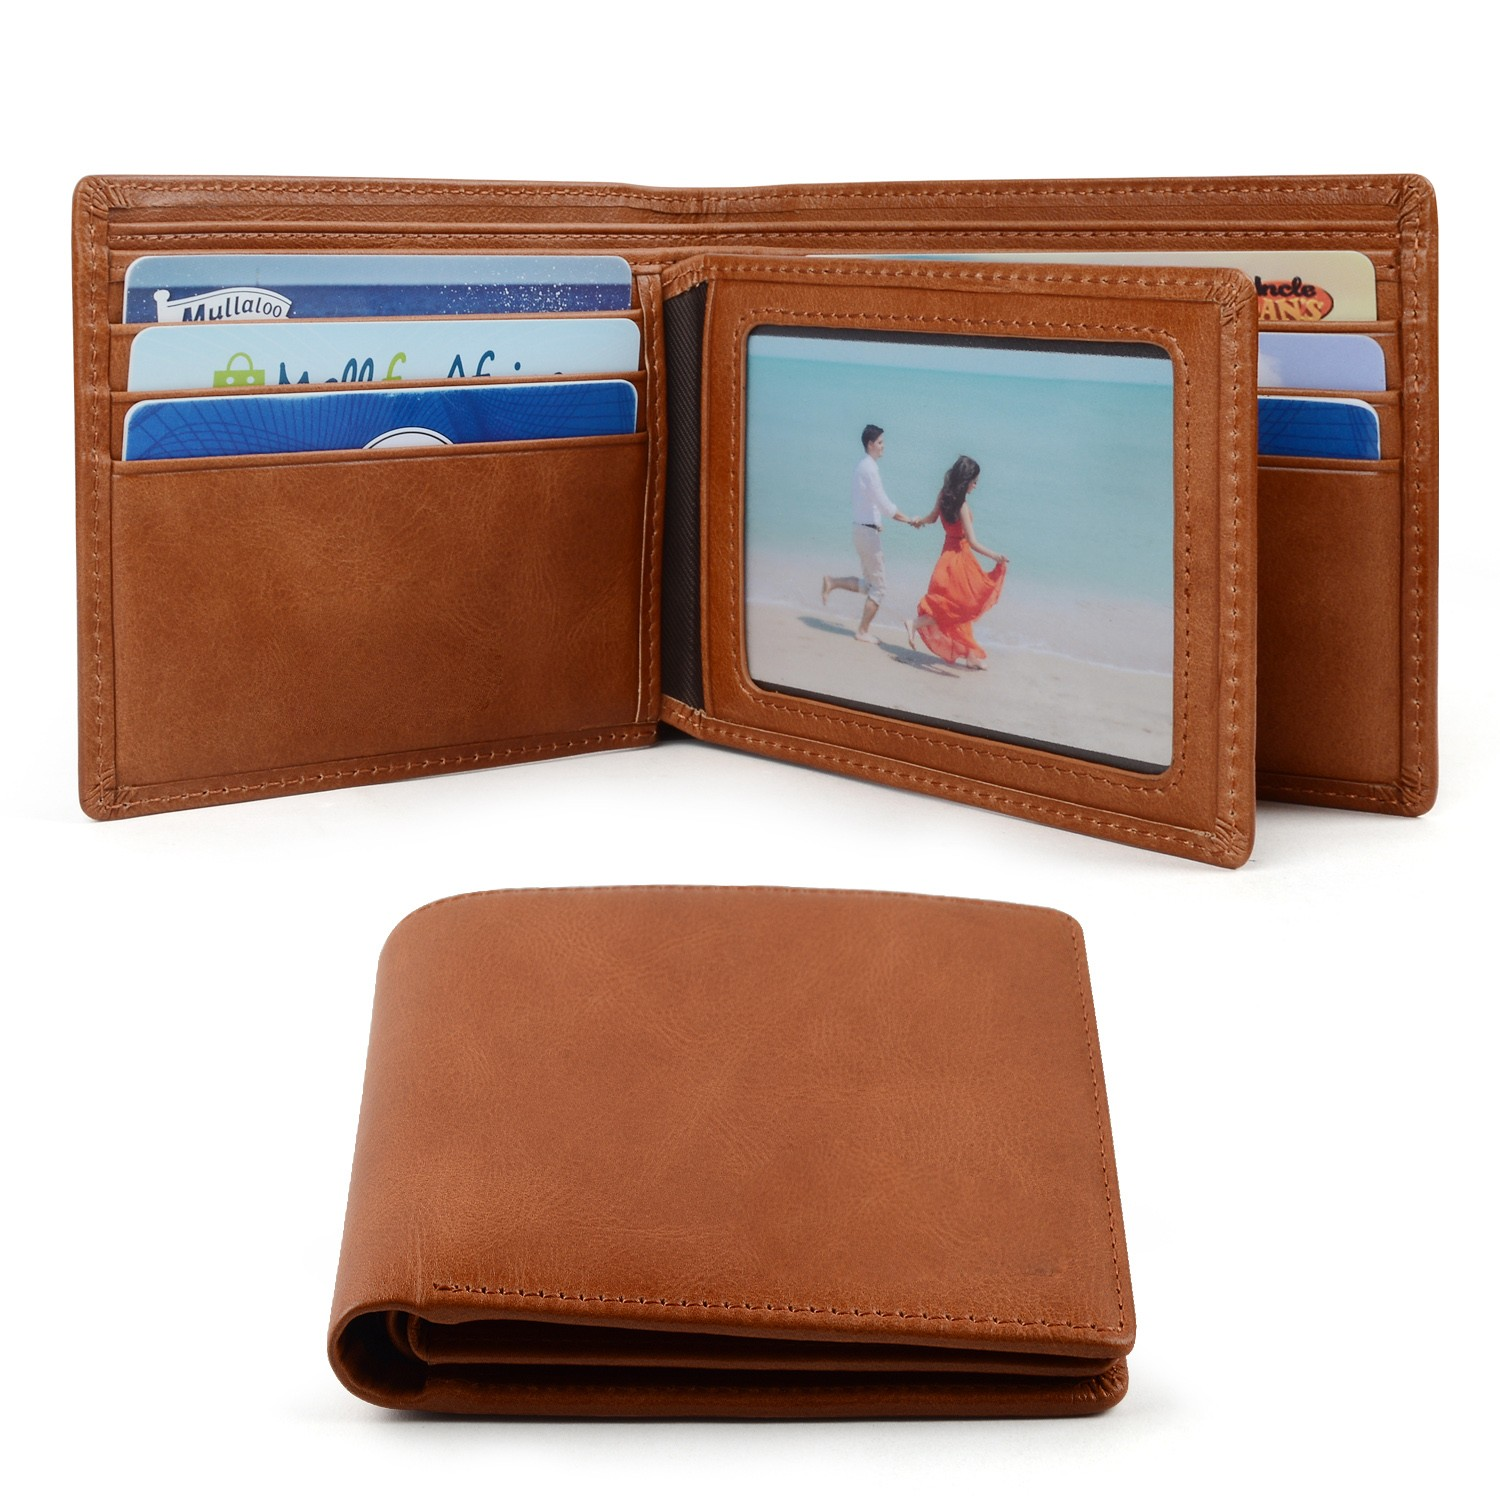 leather travel wallet large capacity for men-1